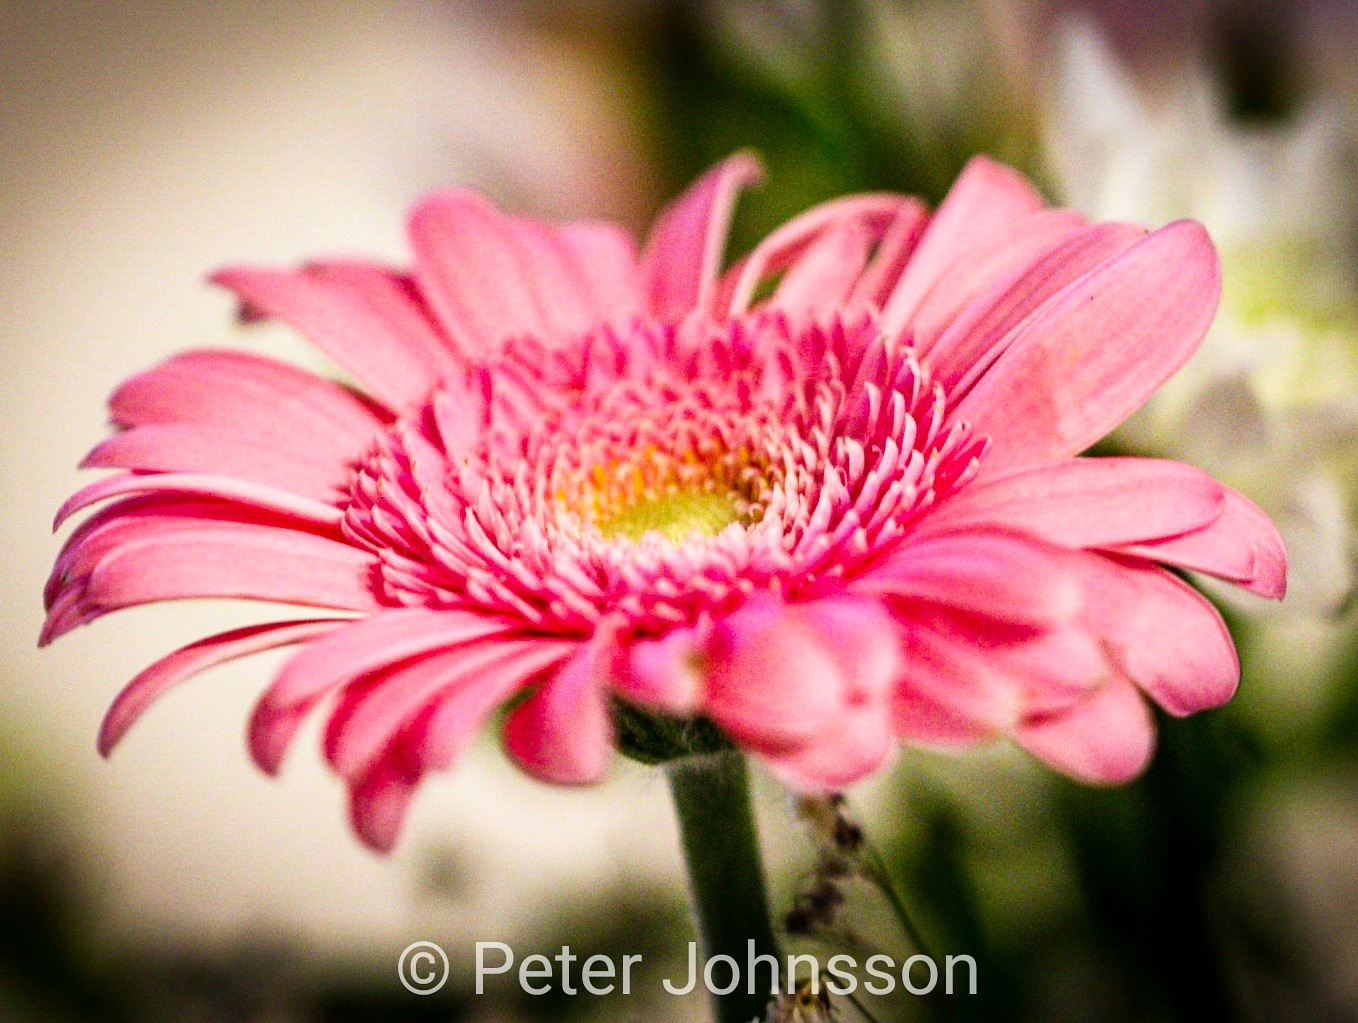 flower by Peter Johnsson